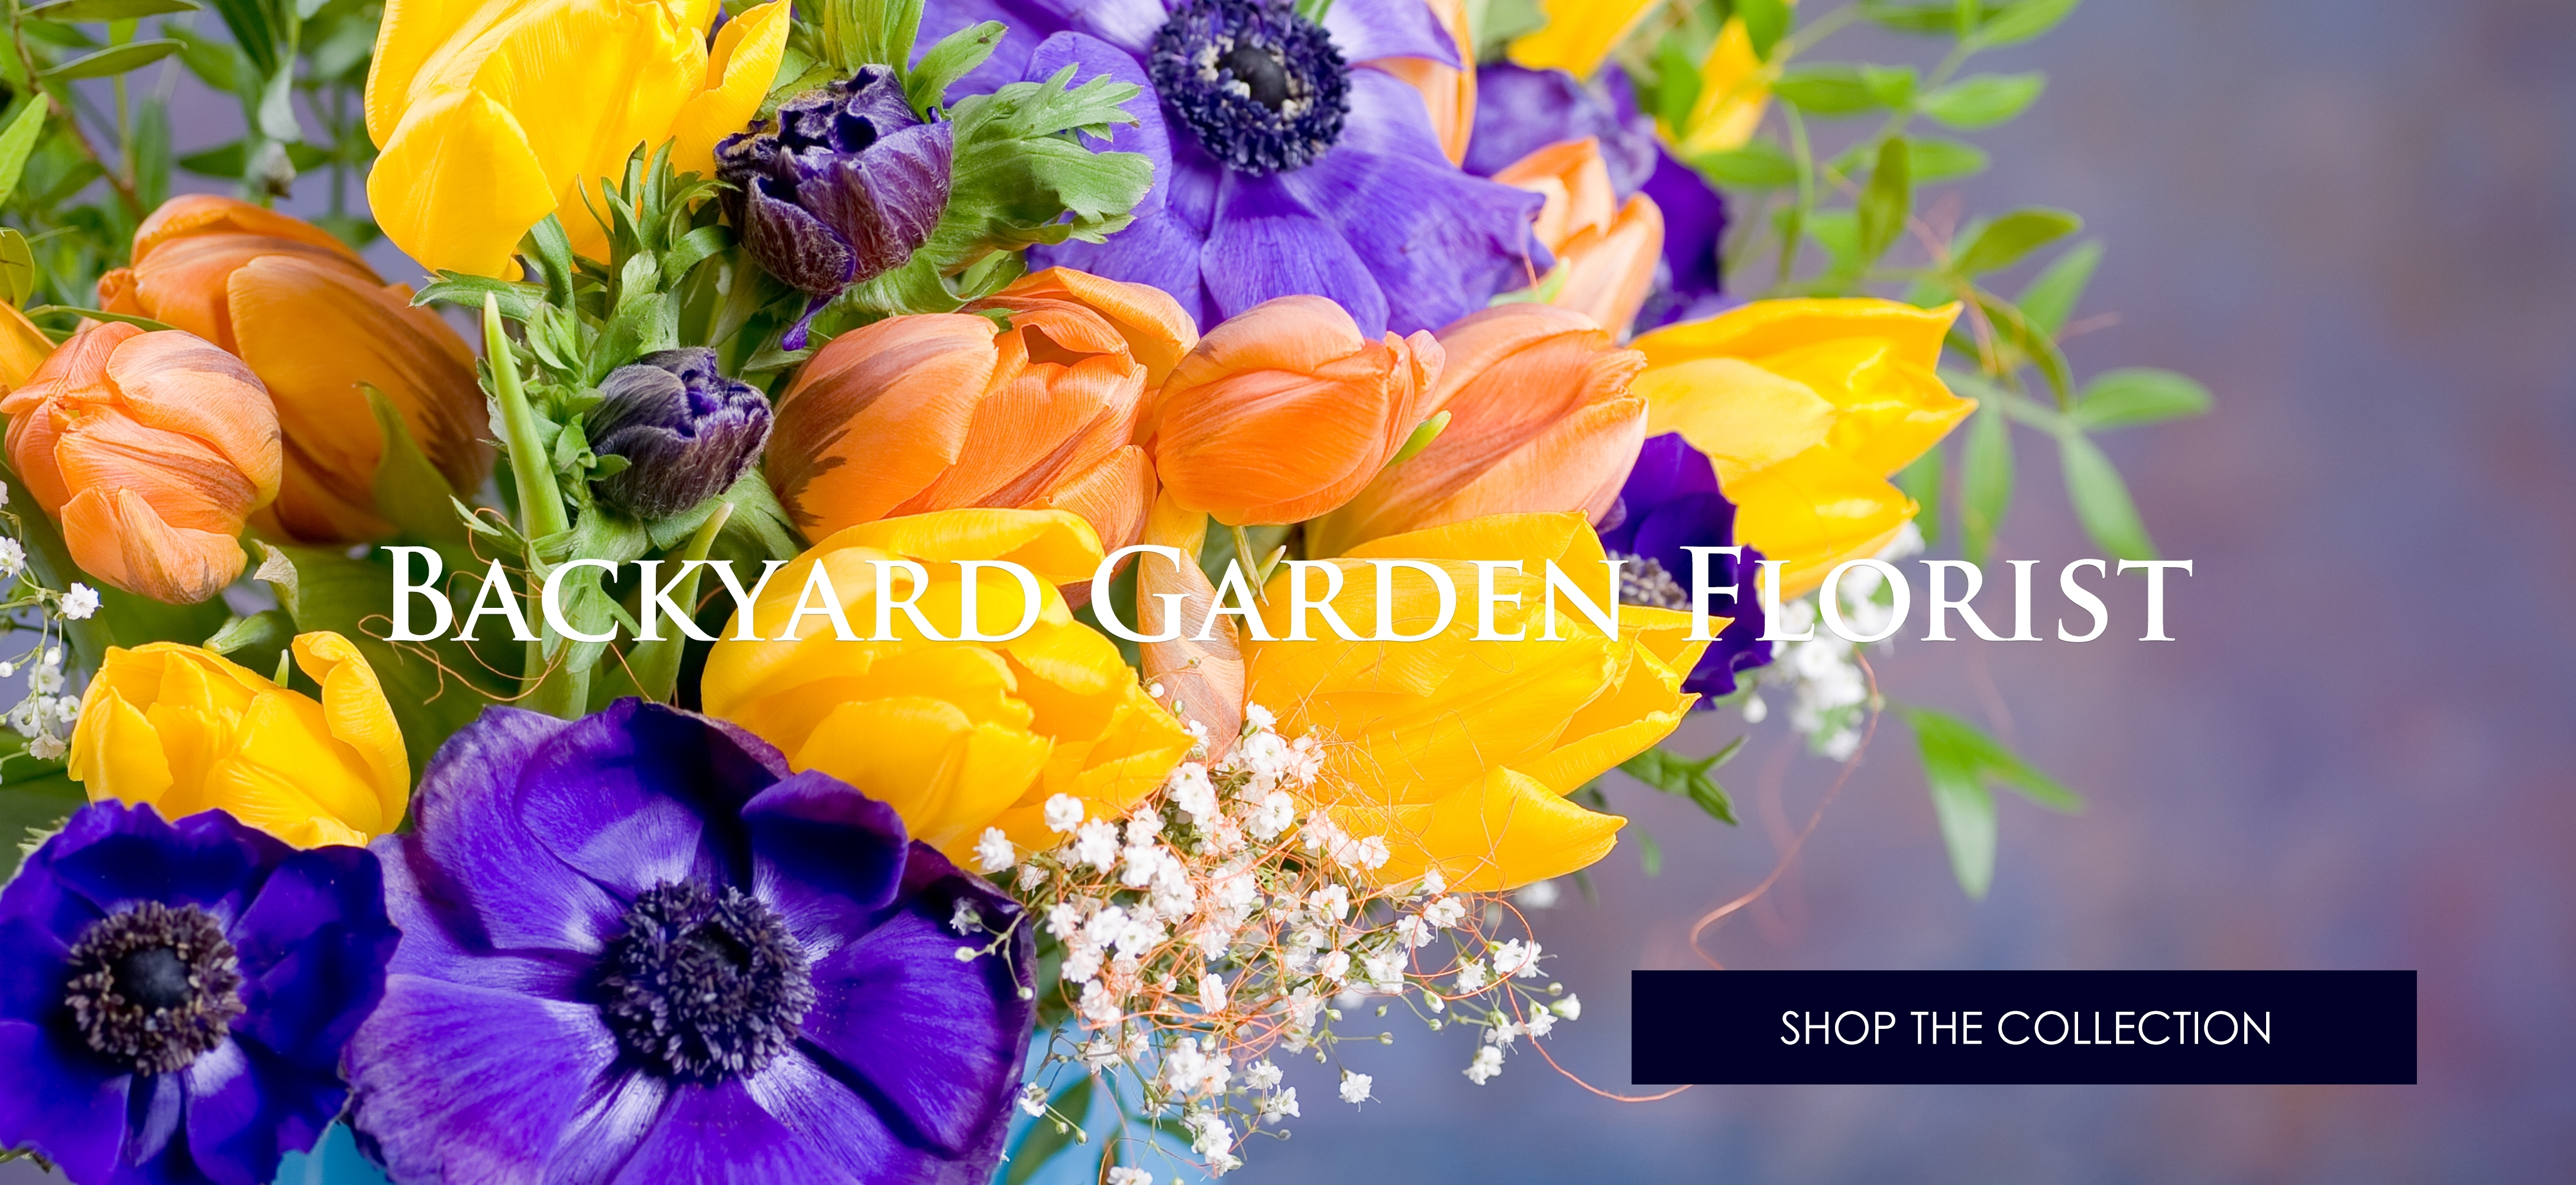 Fayetteville Florist | Flower Delivery By Backyard Garden Florist within Backyard Garden Florist Fayetteville Ny